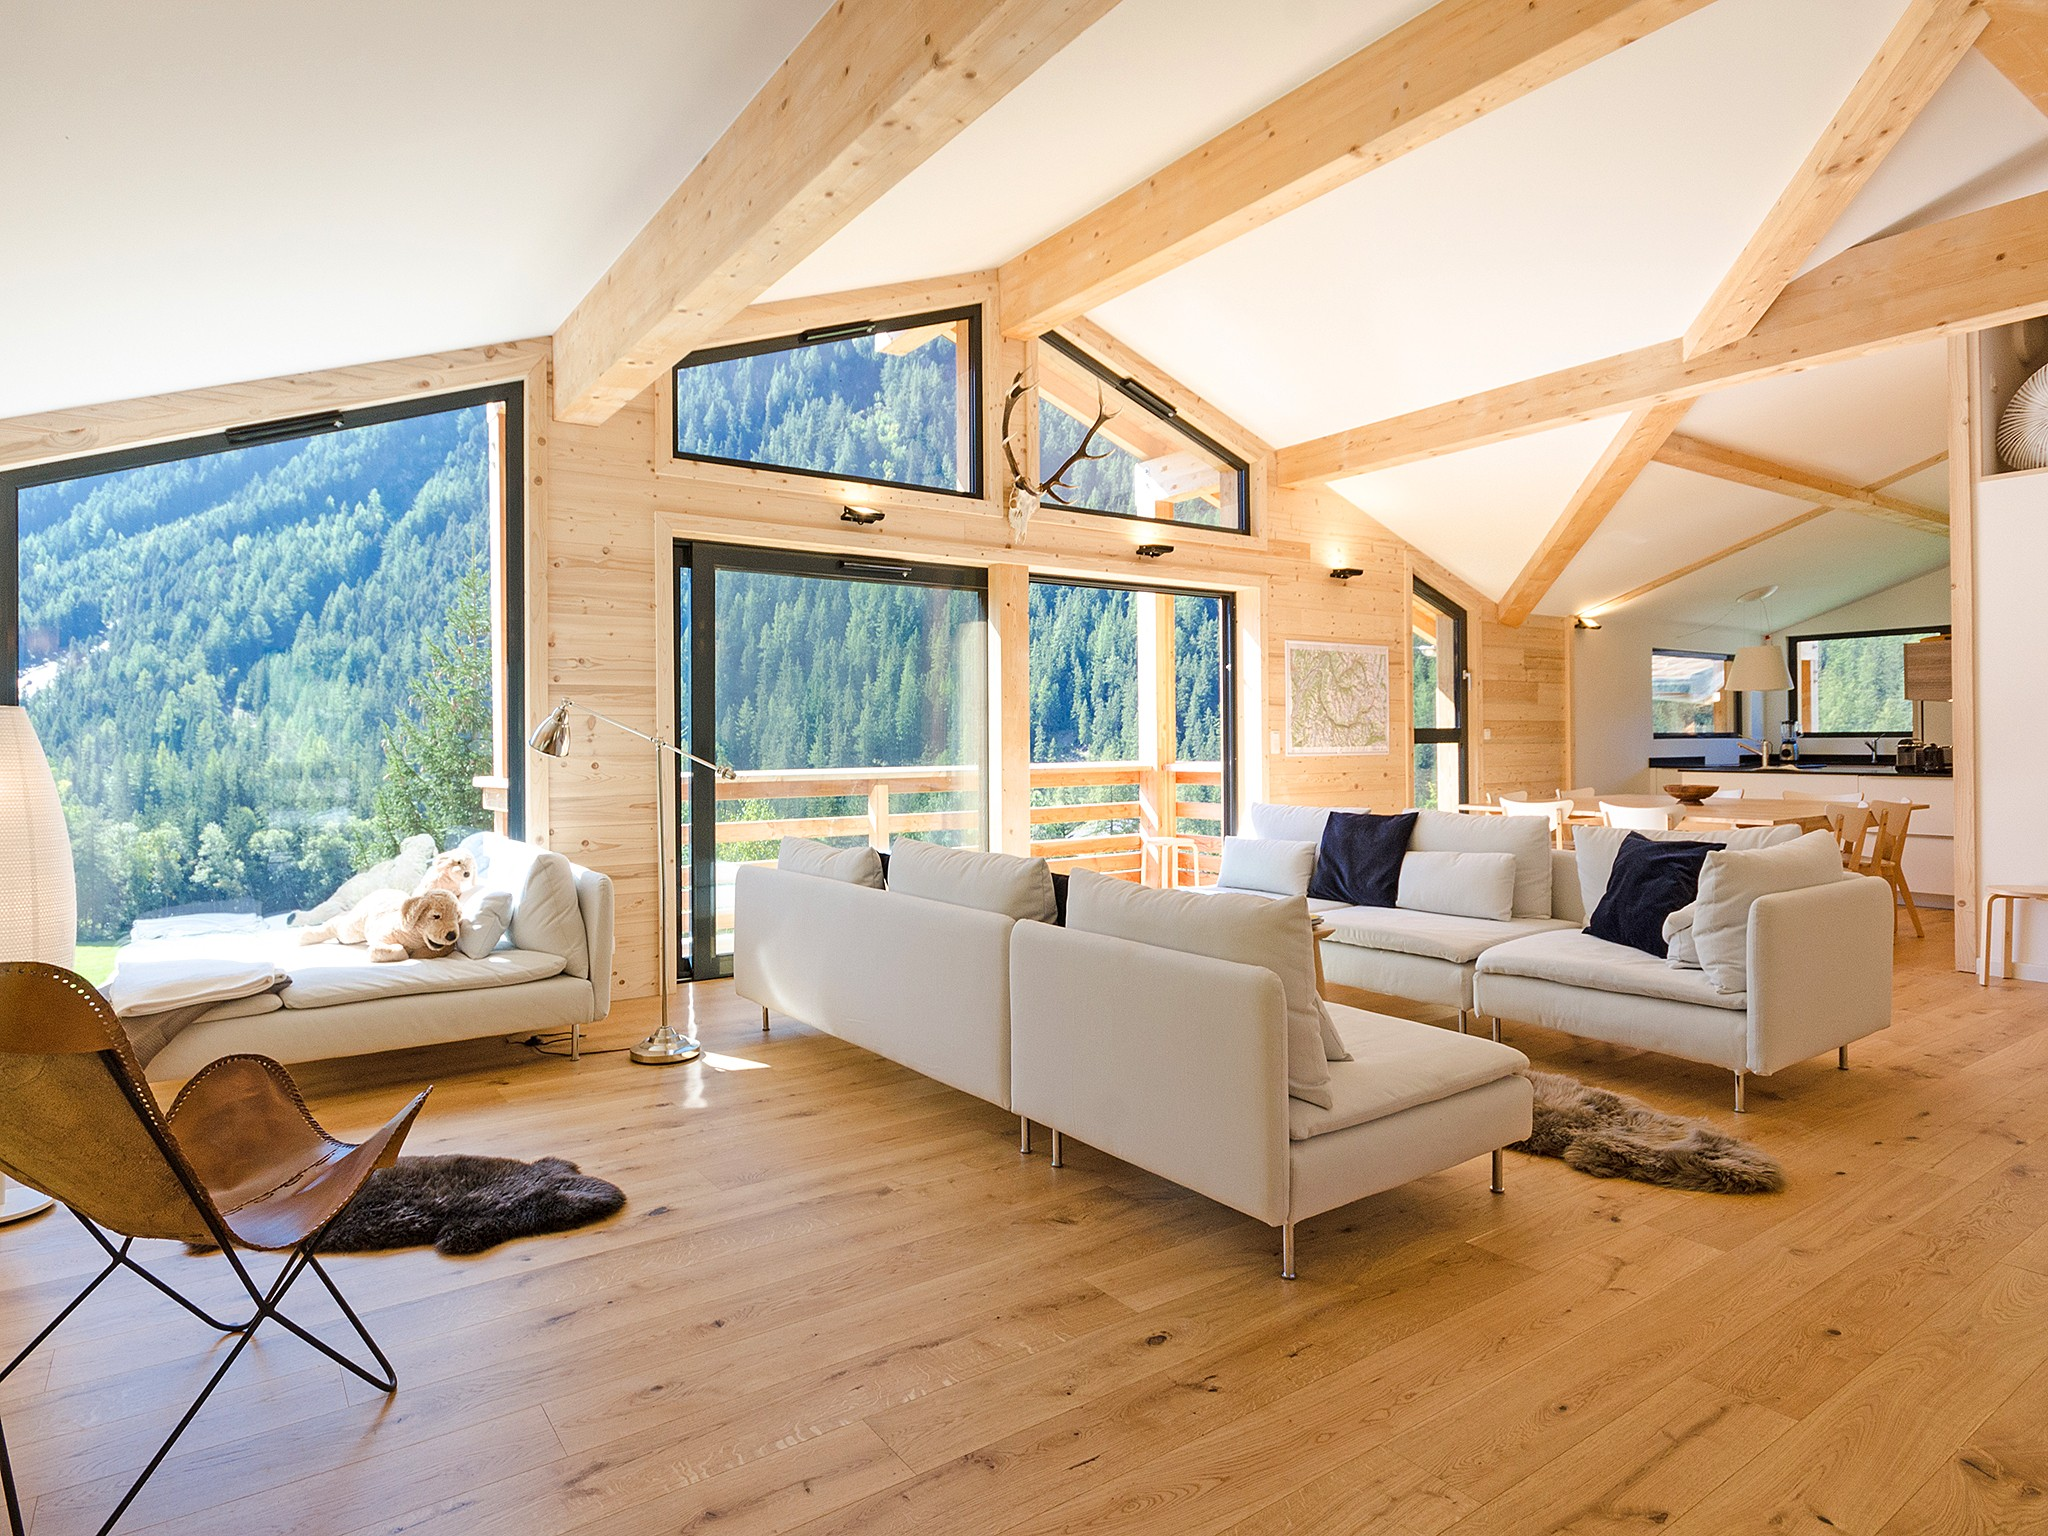 Chalet Olympe - living room